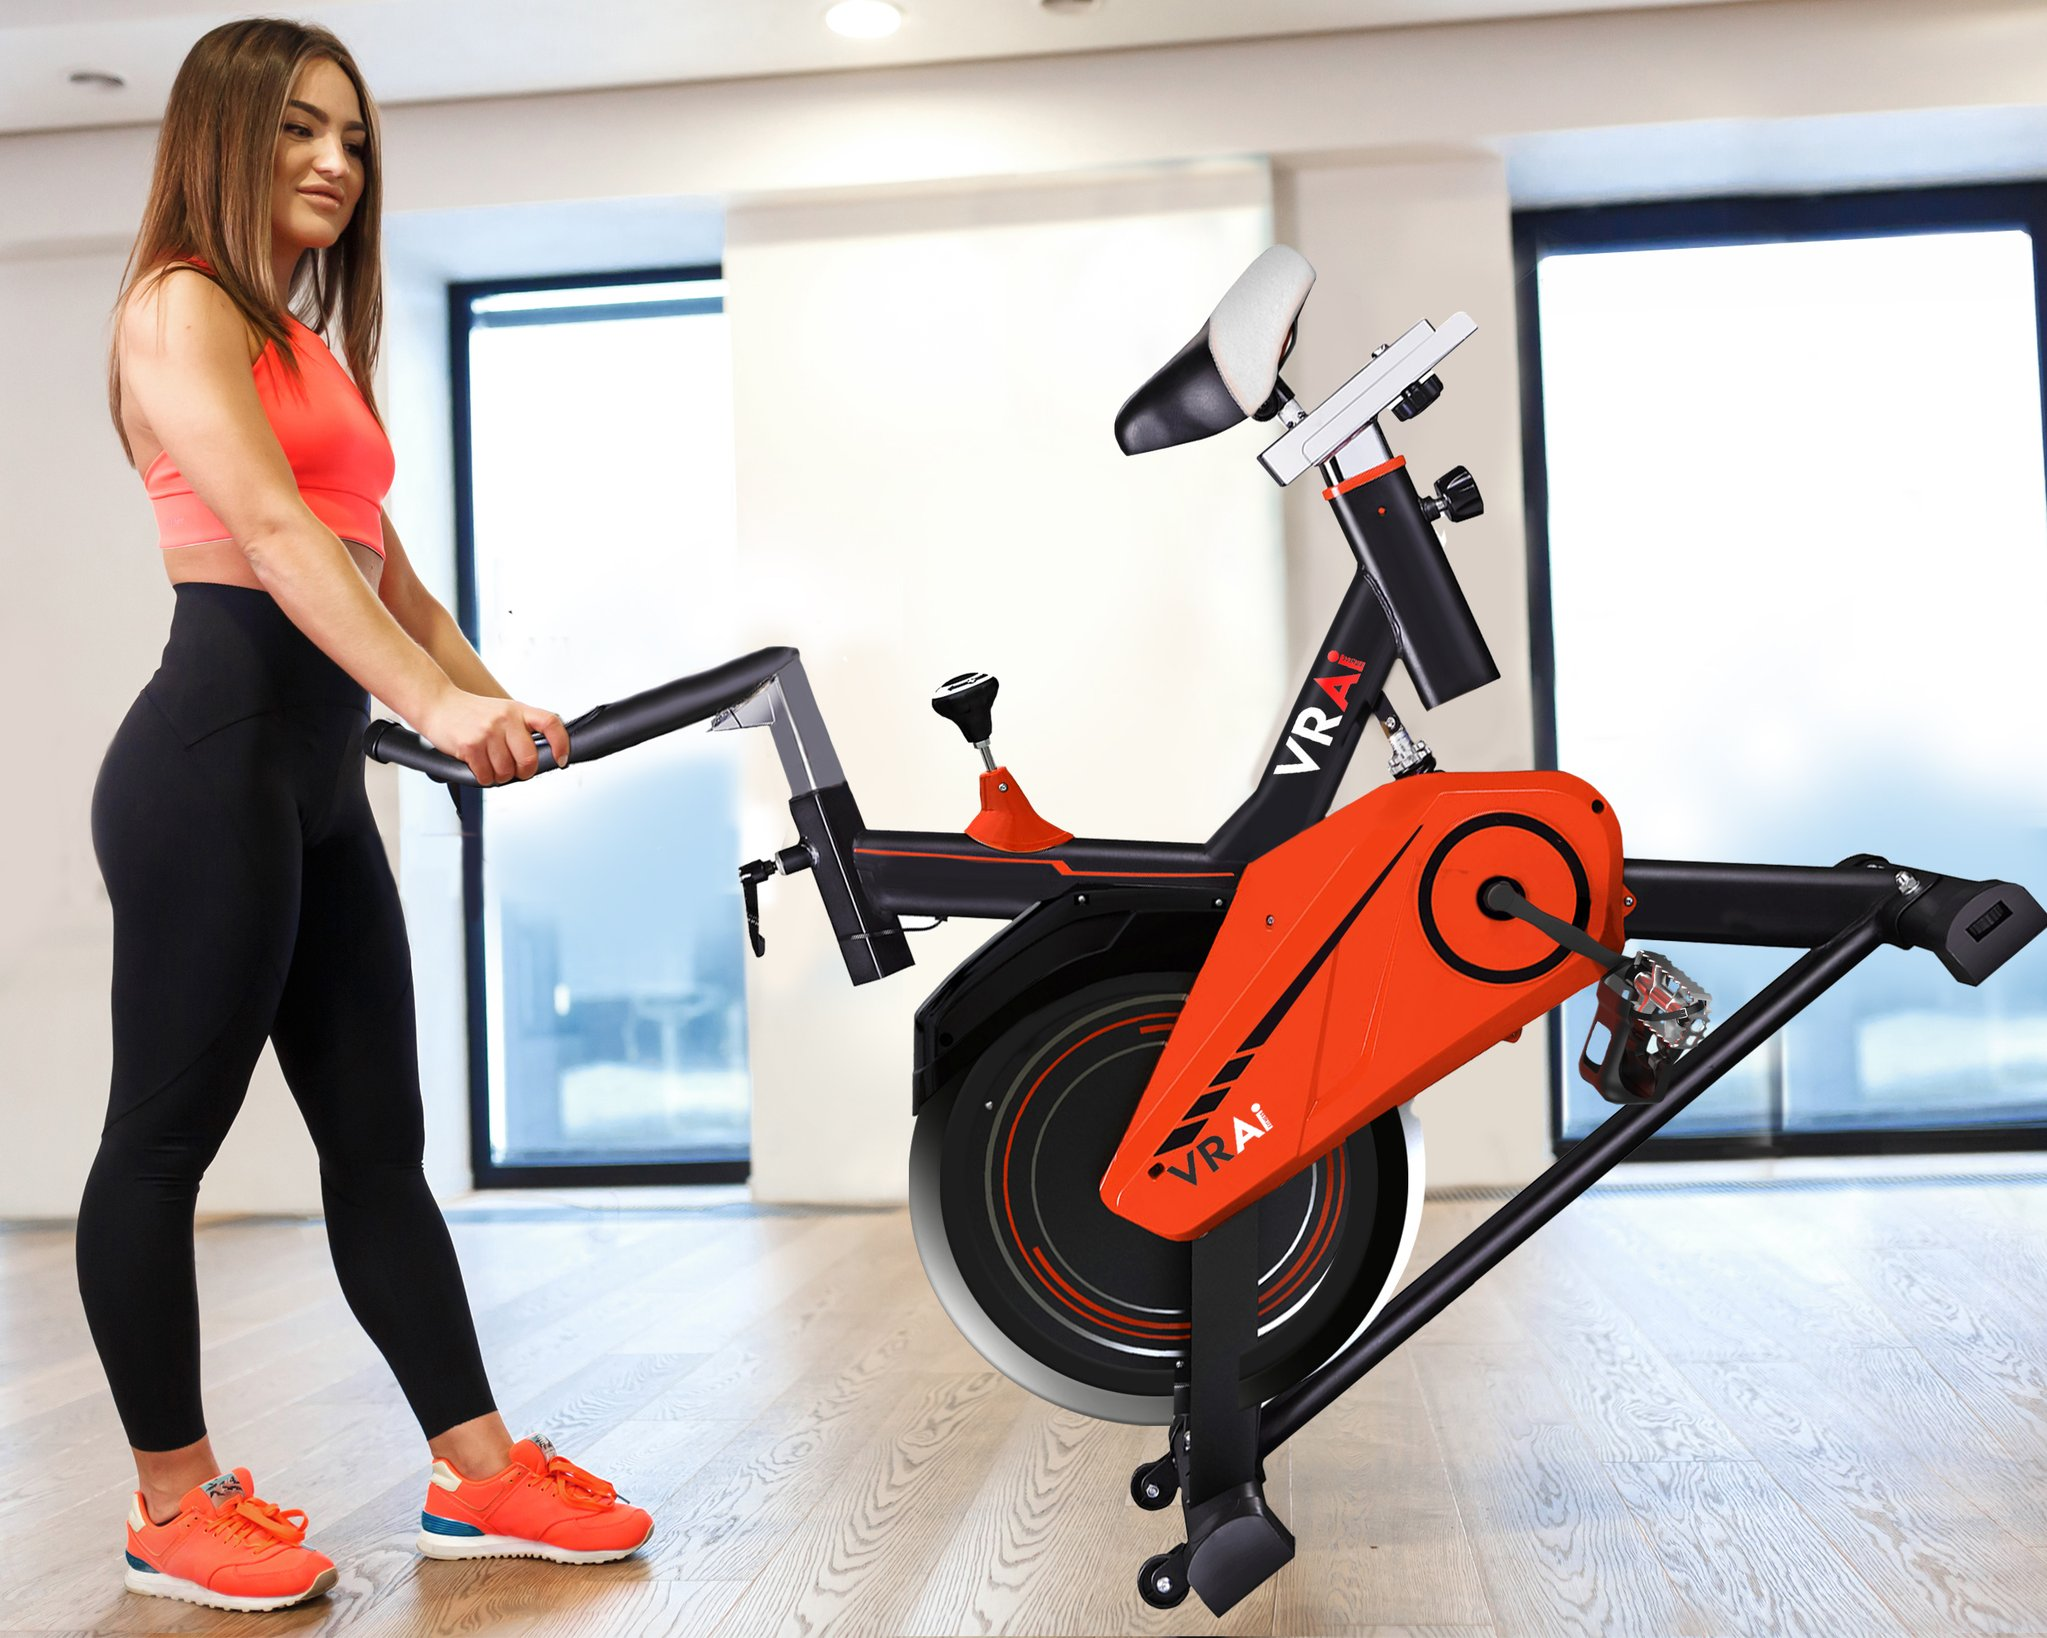 VRAi Introduces Affordable Spin Bike SB1000X with Bluetooth Phone Sync, Durable Design, and Comfort